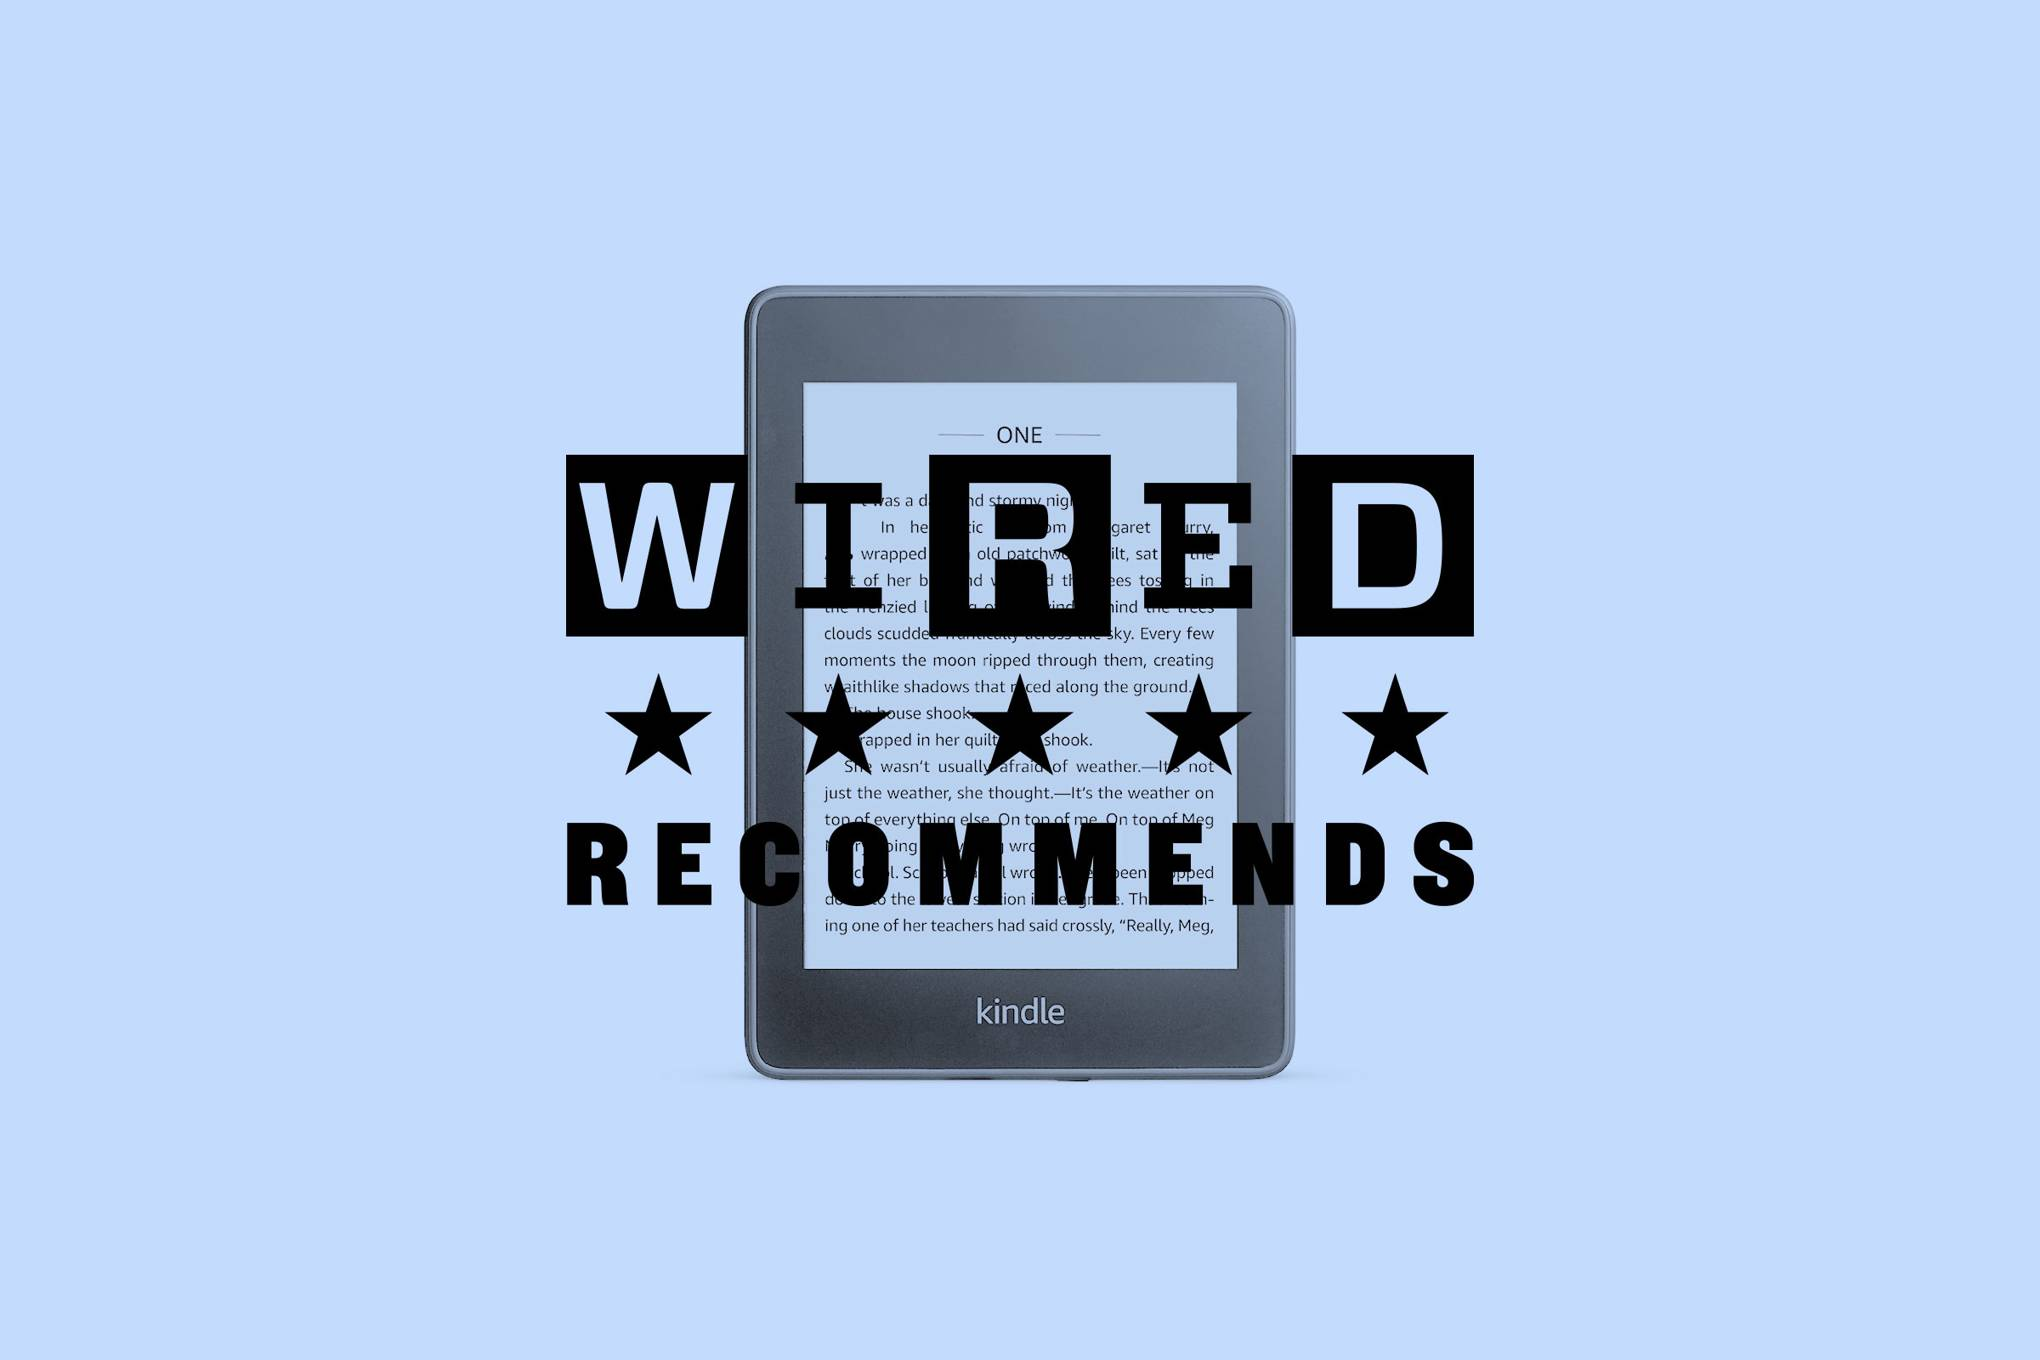 Best Kindle 2019: The best e-readers in 2019 | WIRED UK